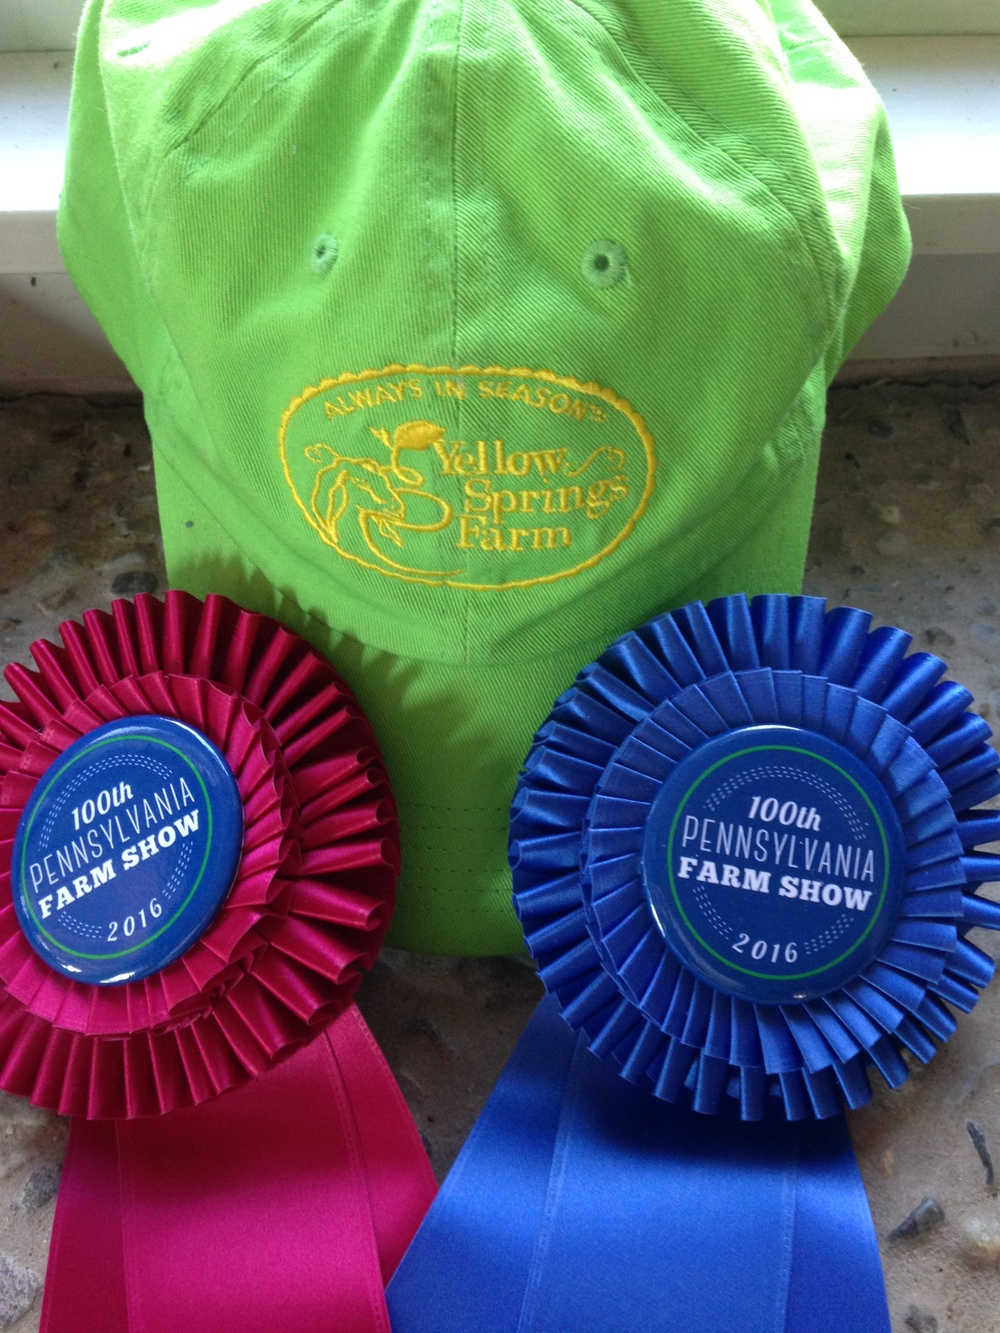 2016 farm show ribbons.JPG